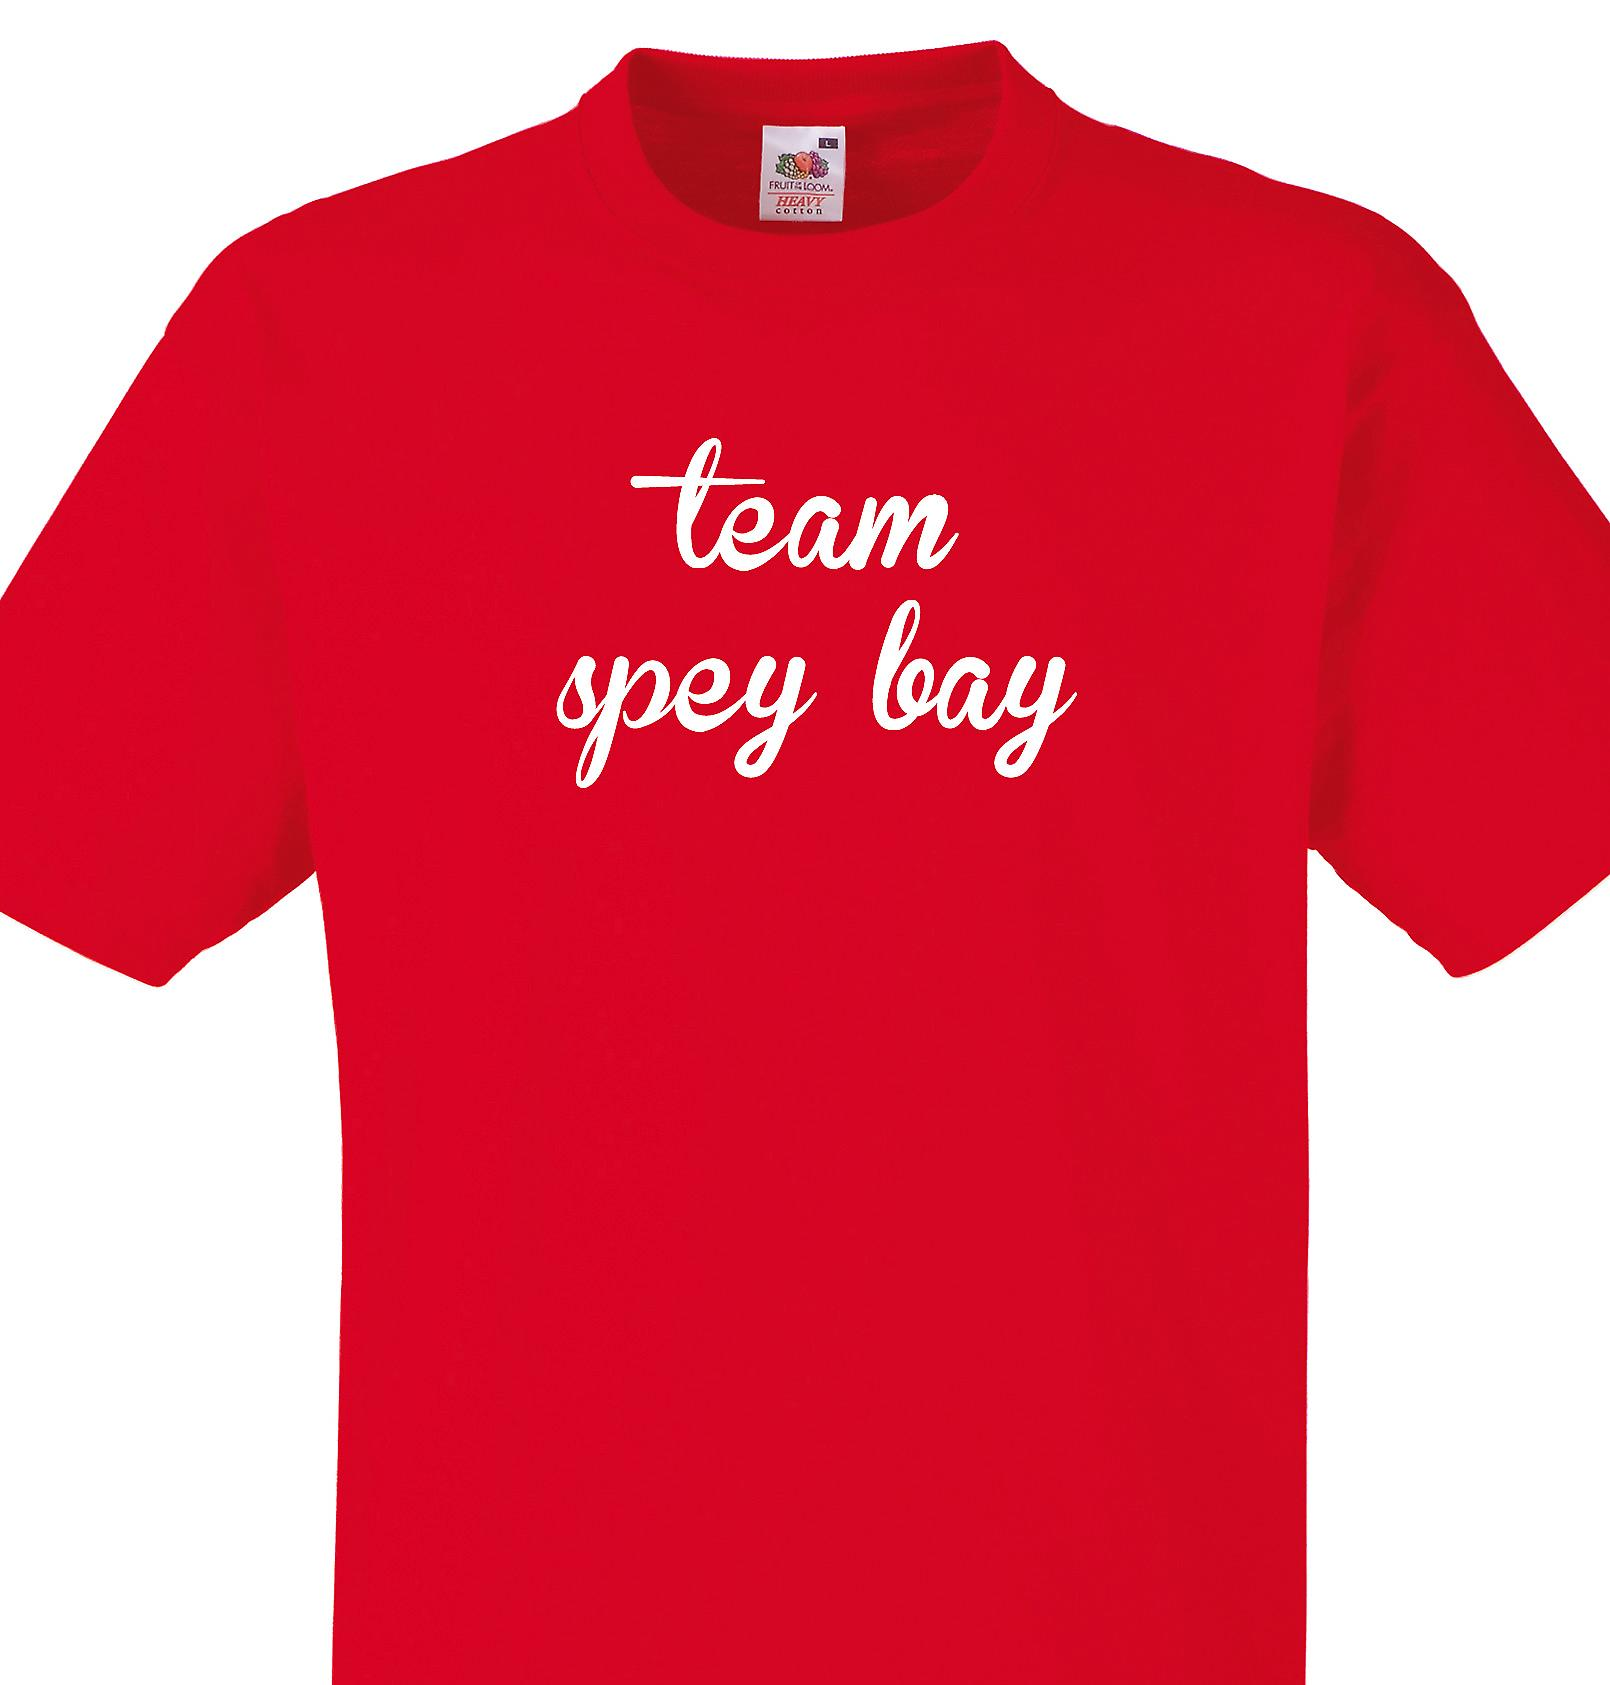 Team Spey bay Red T shirt